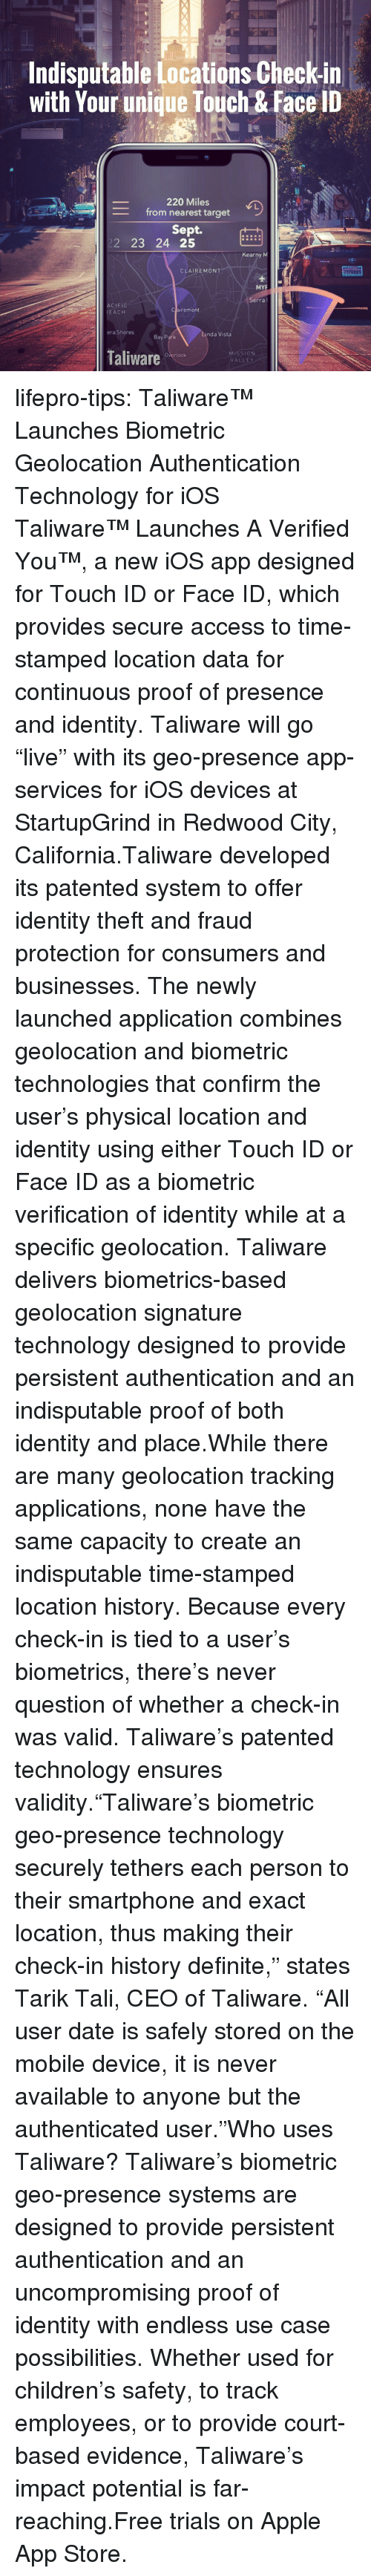 "identity theft: Aa  Indisputable Locations Check-in  with Your unique Touch & Face ID  220 Miles  from nearest target  Sept.  223 24 525t  Kearny M  CLAIREMONT  YPRB89  MYF  ACIFIC  EACH  C airemont  era Shores  nda Vista  Bay Park  Taliwarerict  MISSION  VALLEY lifepro-tips: Taliware™ Launches Biometric Geolocation Authentication Technology for iOS     Taliware™  Launches A Verified You™, a new iOS app designed for Touch ID or Face  ID, which provides secure access to time-stamped location data for  continuous proof of presence and identity. Taliware will go ""live"" with  its geo-presence app-services for iOS devices at StartupGrind in Redwood  City, California.Taliware developed its patented system to  offer identity theft and fraud protection for consumers and businesses.  The newly launched application combines geolocation and biometric  technologies that confirm the user's physical location and identity  using either Touch ID or Face ID as a biometric verification of identity  while at a specific geolocation. Taliware delivers biometrics-based  geolocation signature technology designed to provide persistent  authentication and an indisputable proof of both identity and place.While  there are many geolocation tracking applications, none have the same  capacity to create an indisputable time-stamped location history.  Because every check-in is tied to a user's biometrics, there's never  question of whether a check-in was valid. Taliware's patented technology  ensures validity.""Taliware's biometric geo-presence technology  securely tethers each person to their smartphone and exact location,  thus making their check-in history definite,"" states Tarik Tali, CEO of  Taliware. ""All user date is safely stored on the mobile device, it is  never available to anyone but the authenticated user.""Who uses  Taliware? Taliware's biometric geo-presence systems are designed to  provide persistent authentication and an uncompromising proof of  identity with endless use case possibilities. Whether used for  children's safety, to track employees, or to provide court-based  evidence, Taliware's impact potential is far-reaching.Free trials on Apple App Store."